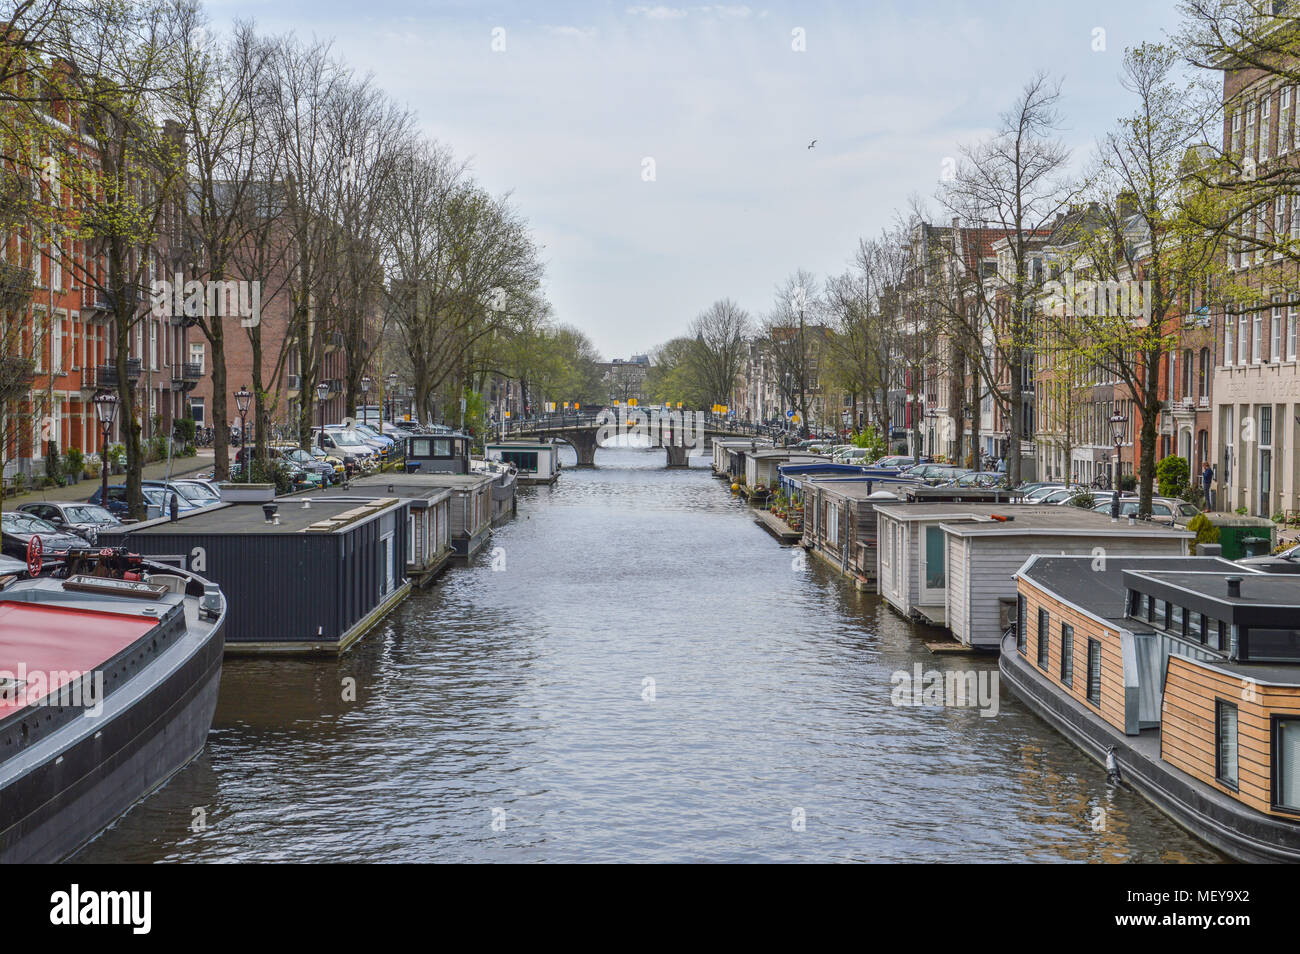 Nieuwe Prinsengracht At Amsterdam The Netherlands - Stock Image